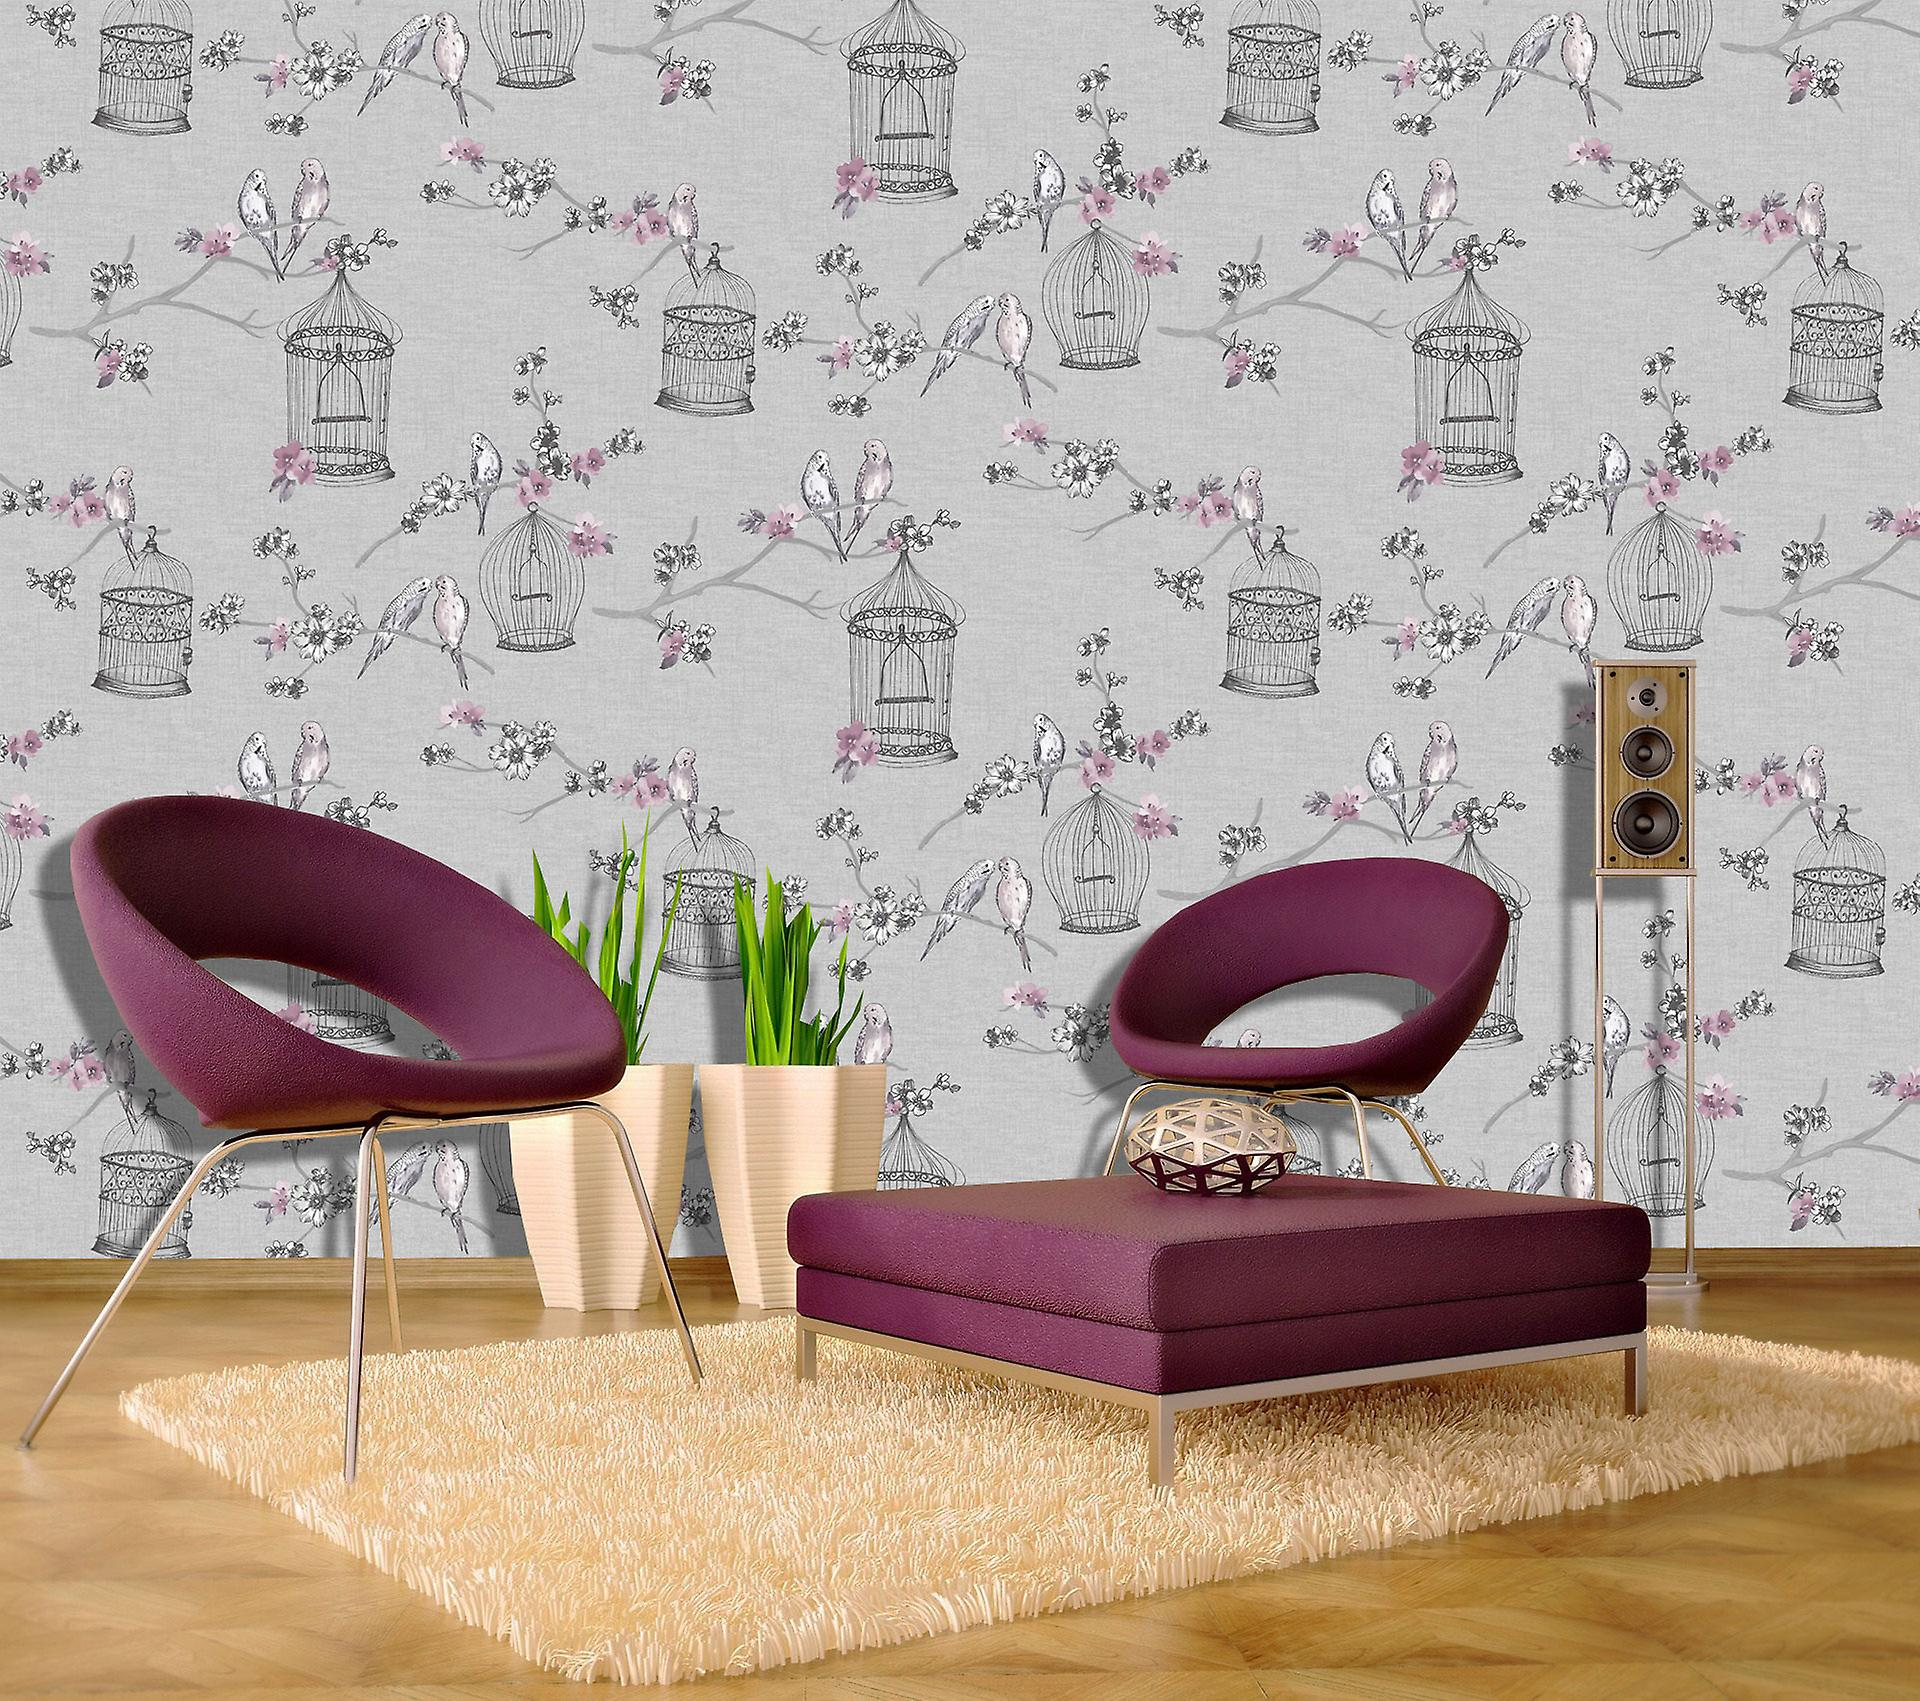 Birds Wallpaper Birdcage Flowers Floral Love Hearts Grey Pink Lavender Arthouse